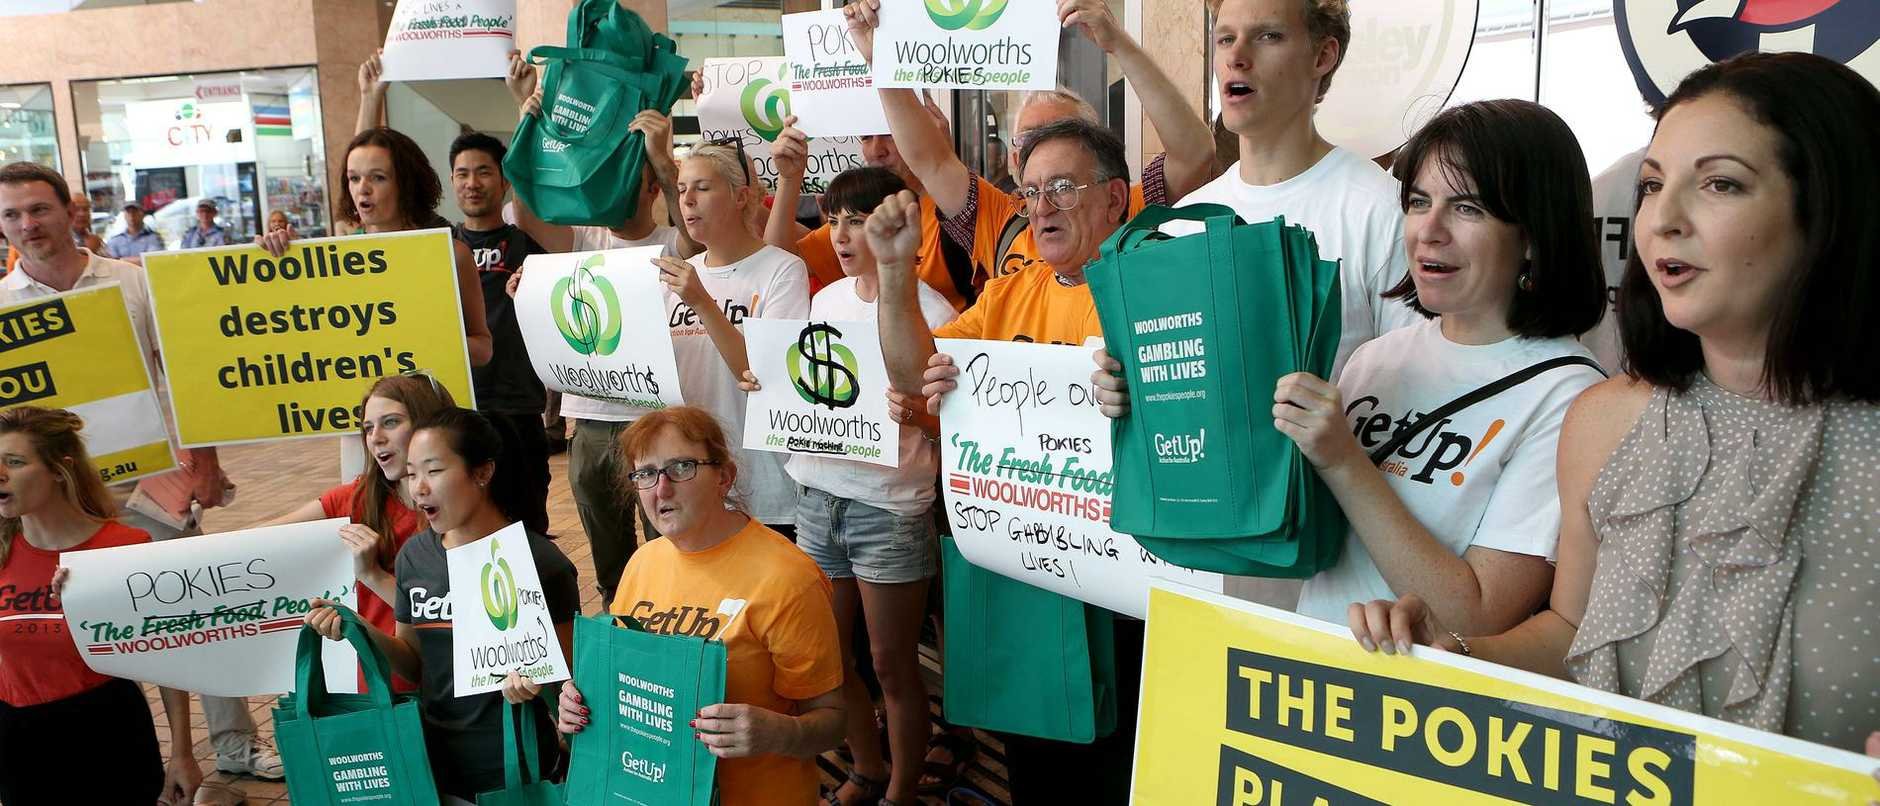 Protesters urging Woolworths to divest from pokies at the Woolworths AGM.